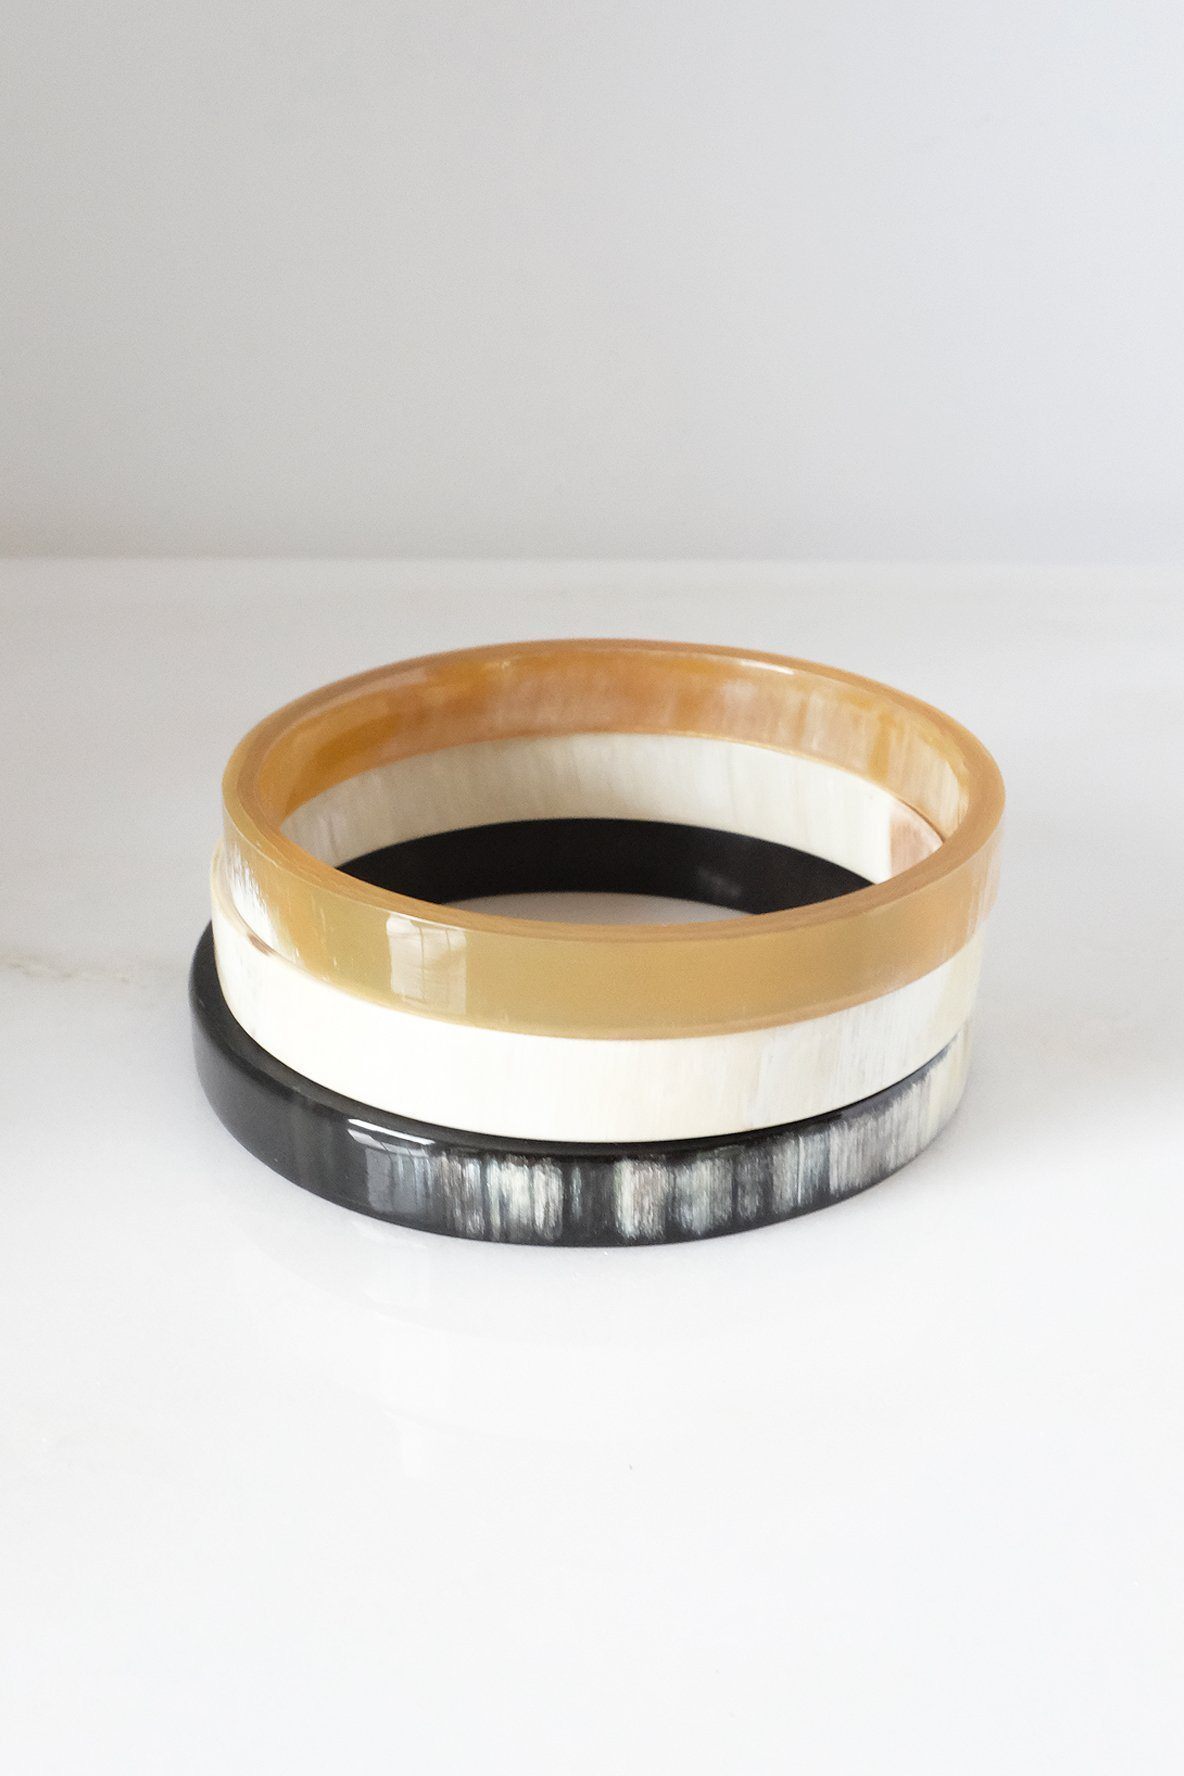 Tron Buffalo Horn Minimalist Bangle Bracelet (3pcs) - Handcrafted & Unique Buffalo Horn Jewelry